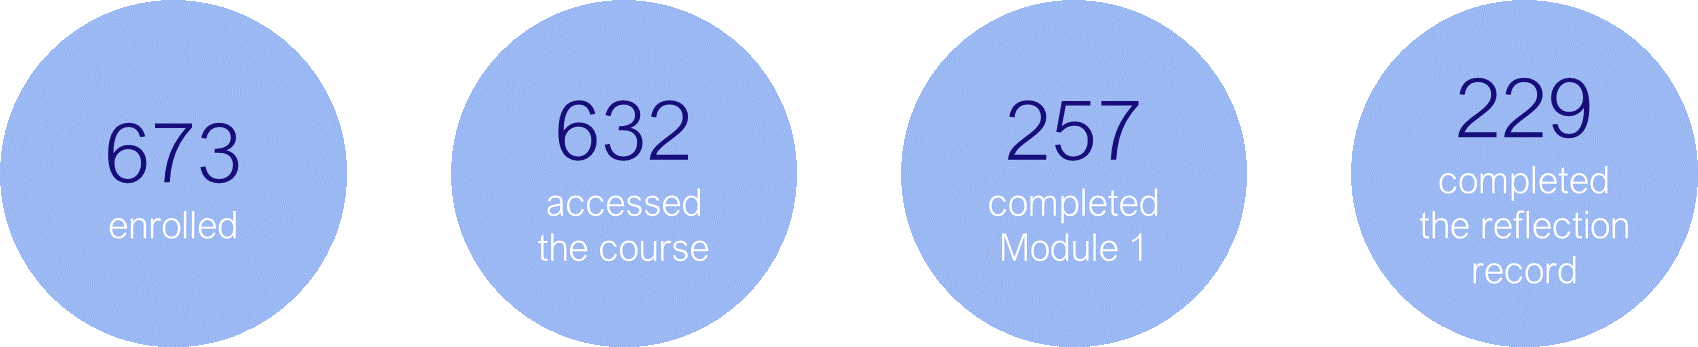 A diagram which displays the following facts: 673 students enrolled, 632 accessed the course, 257 completed module 1, 229 completed the reflection record